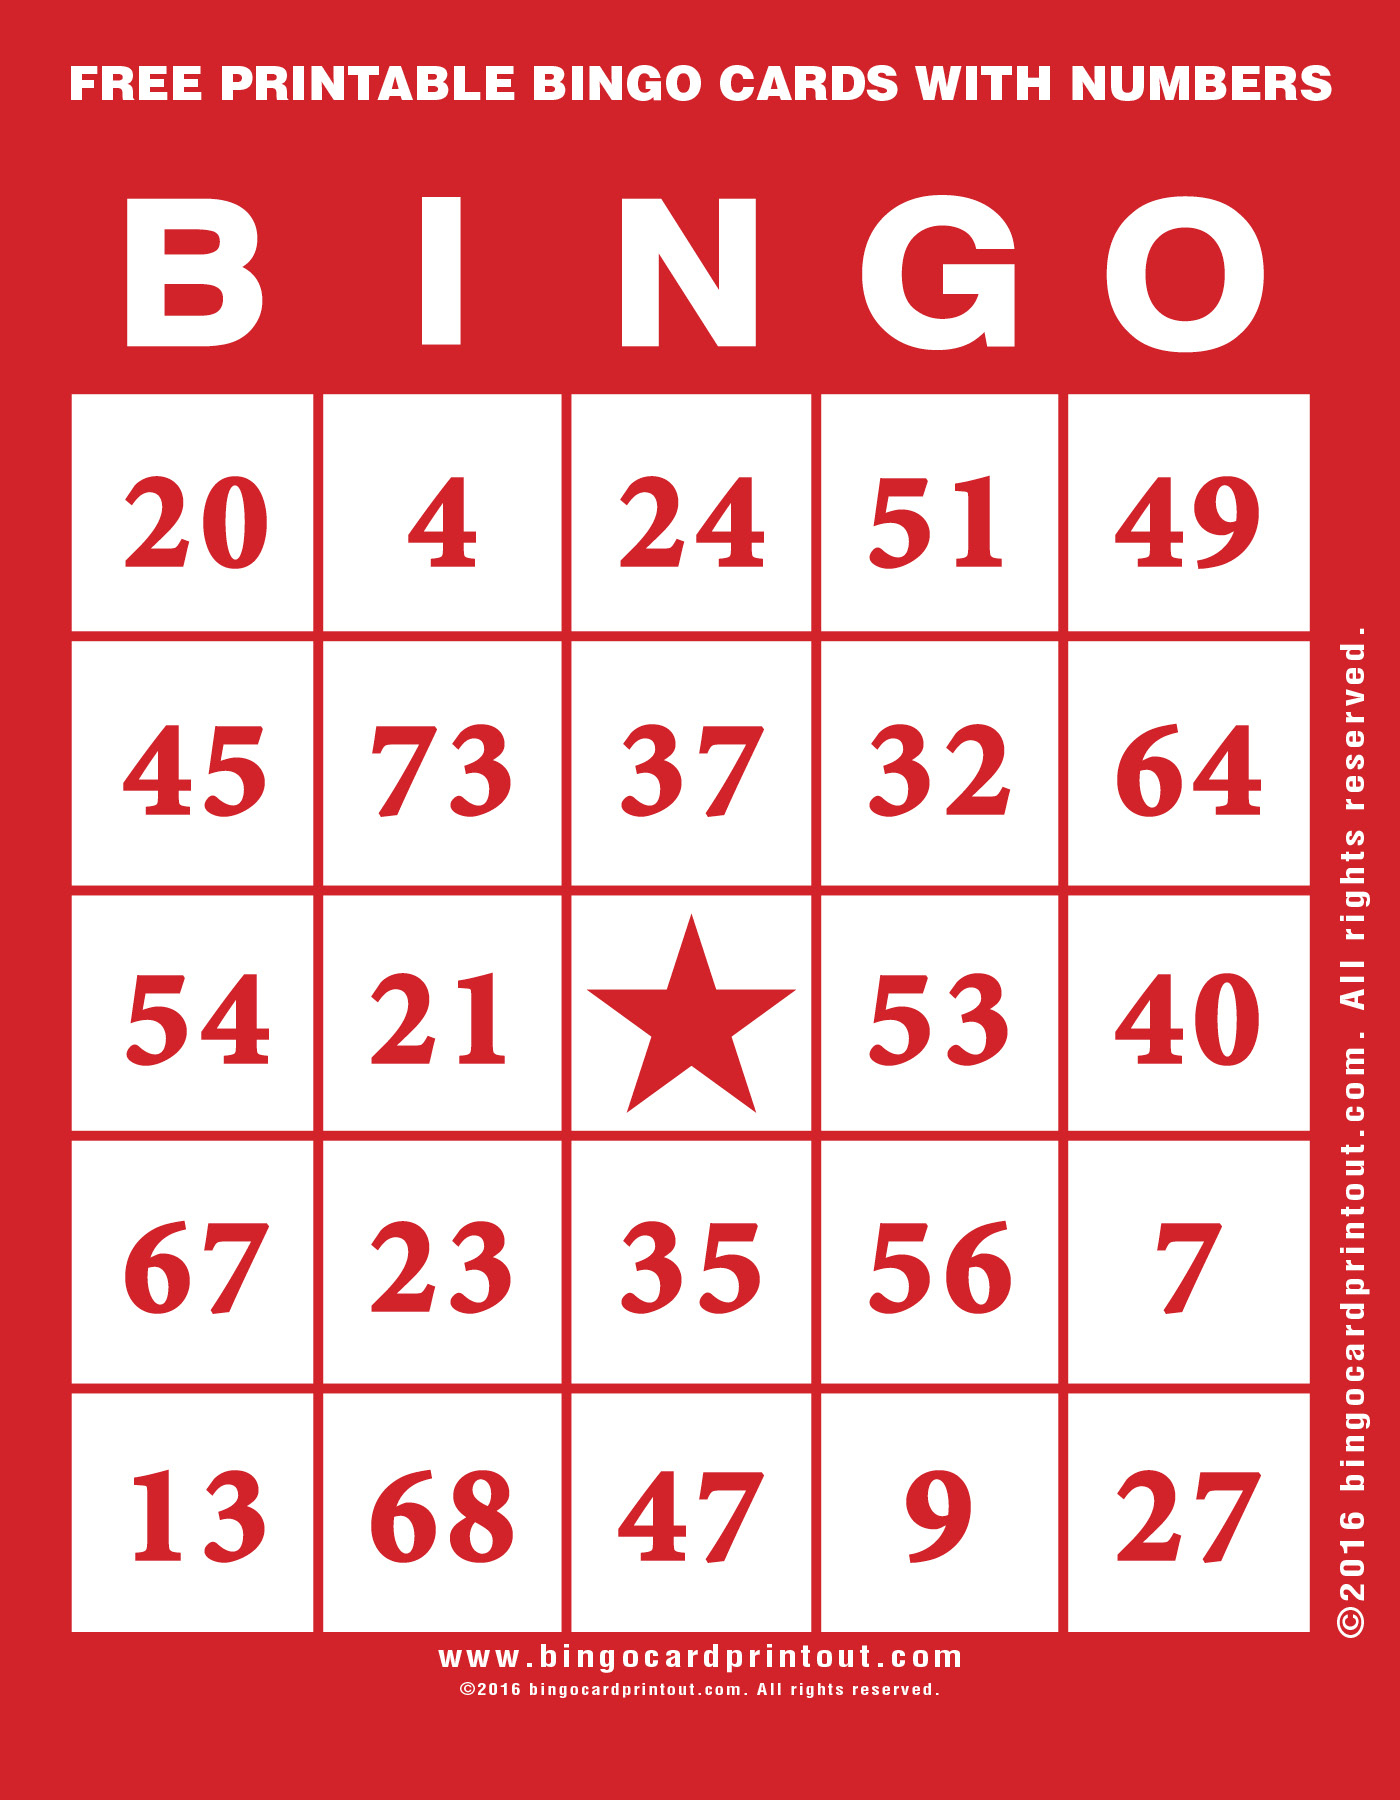 Free Printable Bingo Cards With Numbers - Bingocardprintout